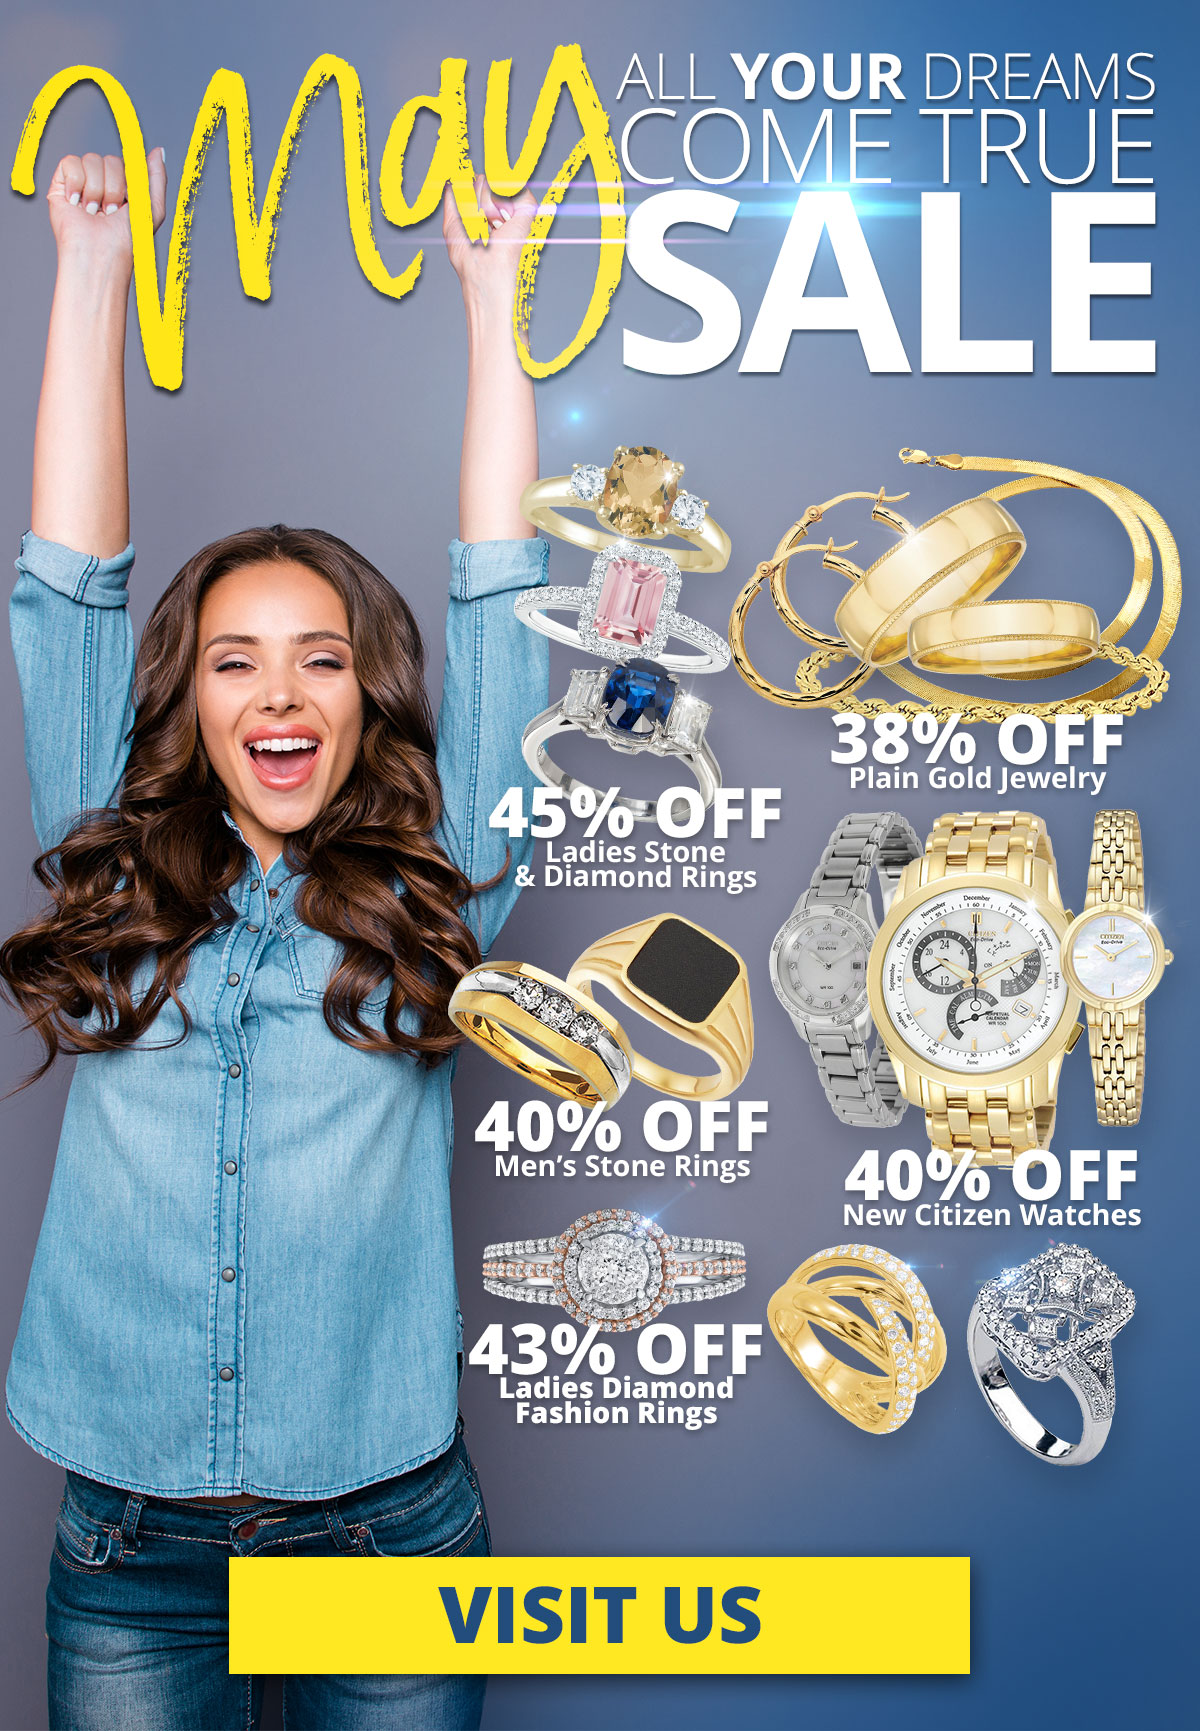 May All YOUR Dreams Come True SALE! 45% OFF Ladies Stone & Diamond Rings 38% OFF Plain Gold Jewelry 40% OFF Men's Stone Rings 40% OFF New Citizen Watches 43% OFF Ladies Diamond Fashion Rings Sale Runs May 1 - 31, 2021. Layaway discounts must be reduced by 12.5%. Offer cannot be combined with any other offer. Discount not available on previouslysold merchandise. Excludes all 3rd party appraised/certified jewelry. Rolex, gold and other high end watches excluded.